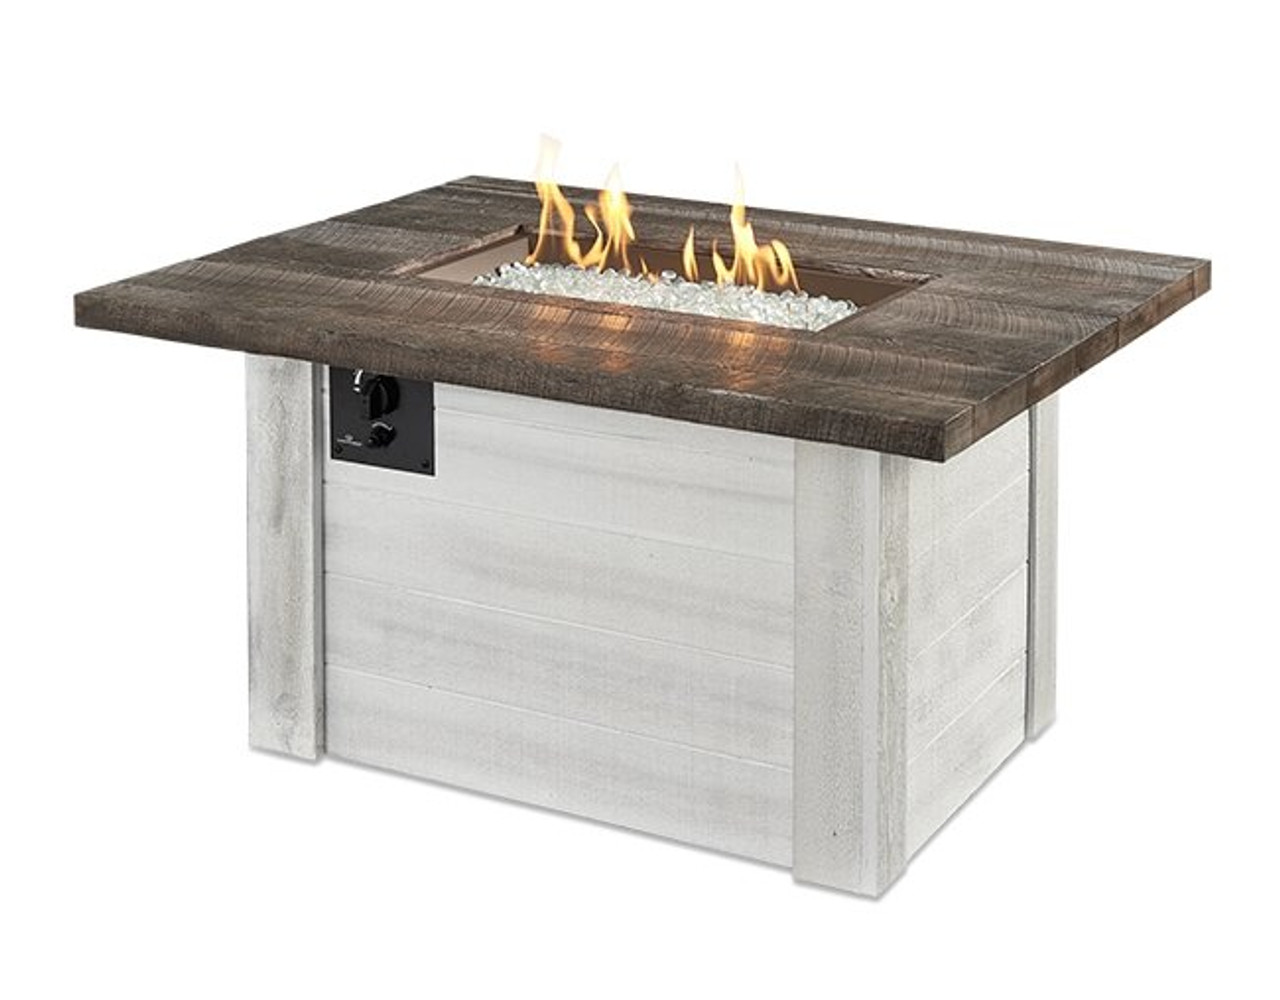 Outdoor Greatroom Alcott Rectangular Gas Fire Pit Table